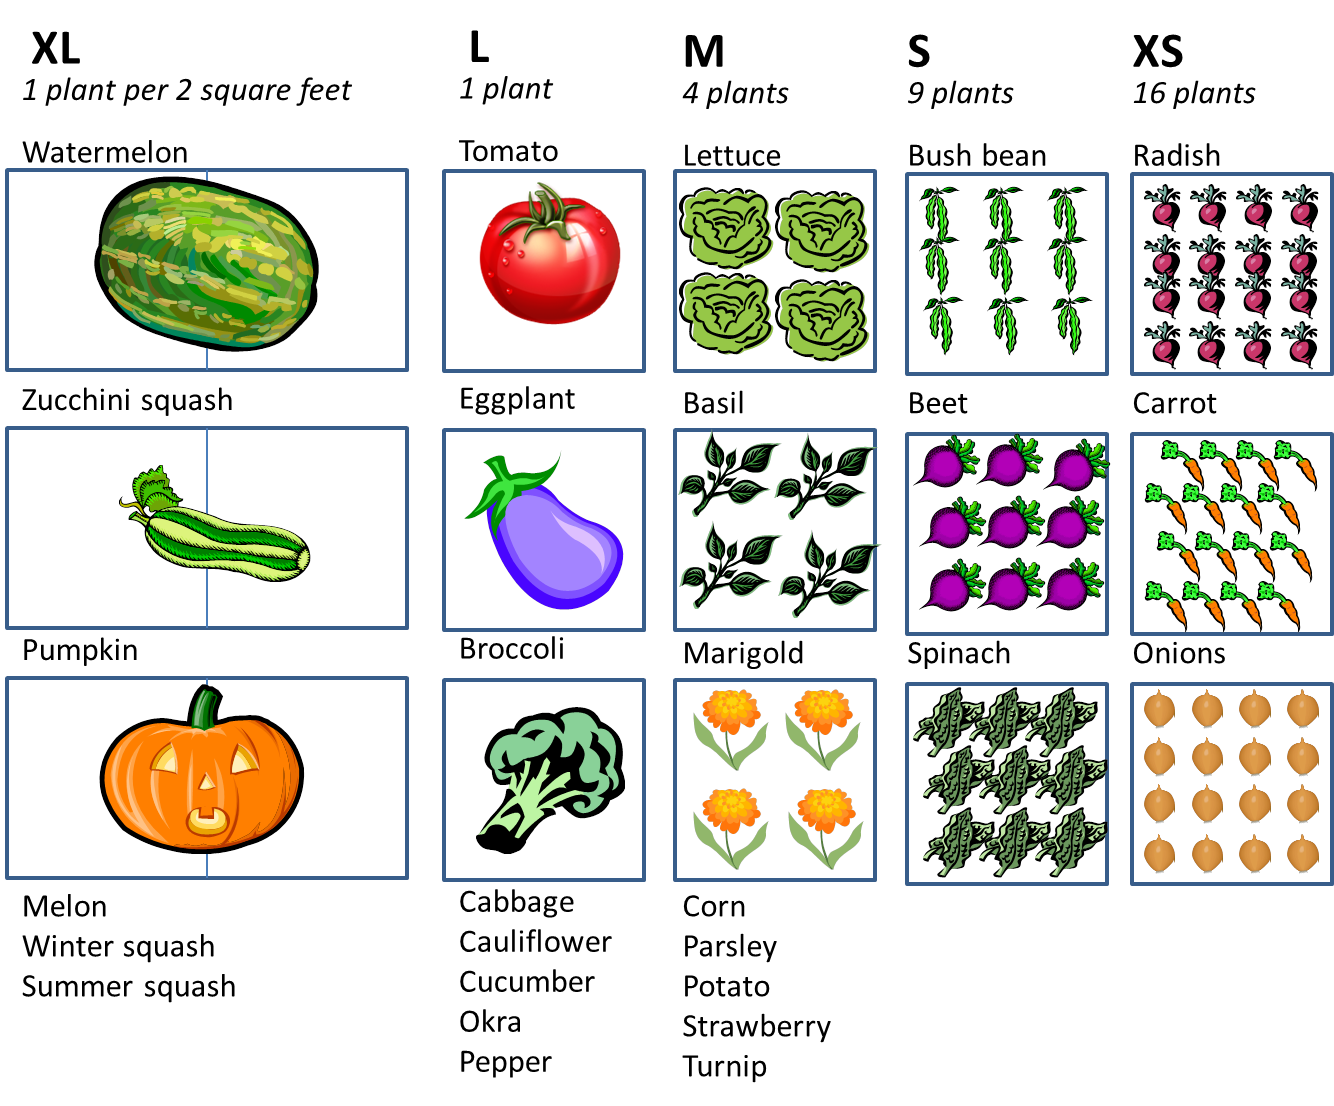 8111df019cae35bd53f73afc48fe7324 - Best Vegetables For Square Foot Gardening